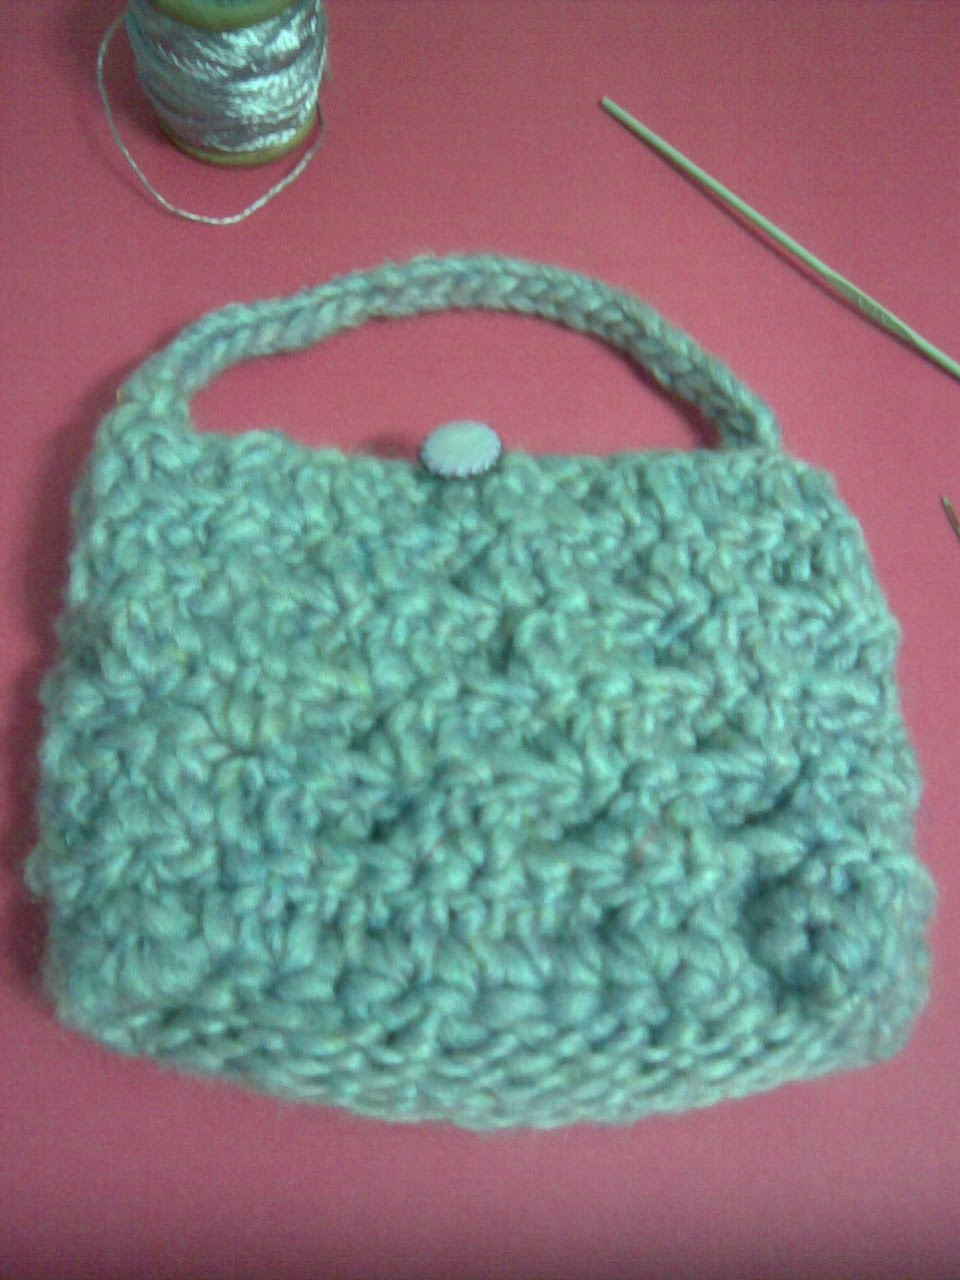 Crocheting Websites : Bolso crochet en relieve